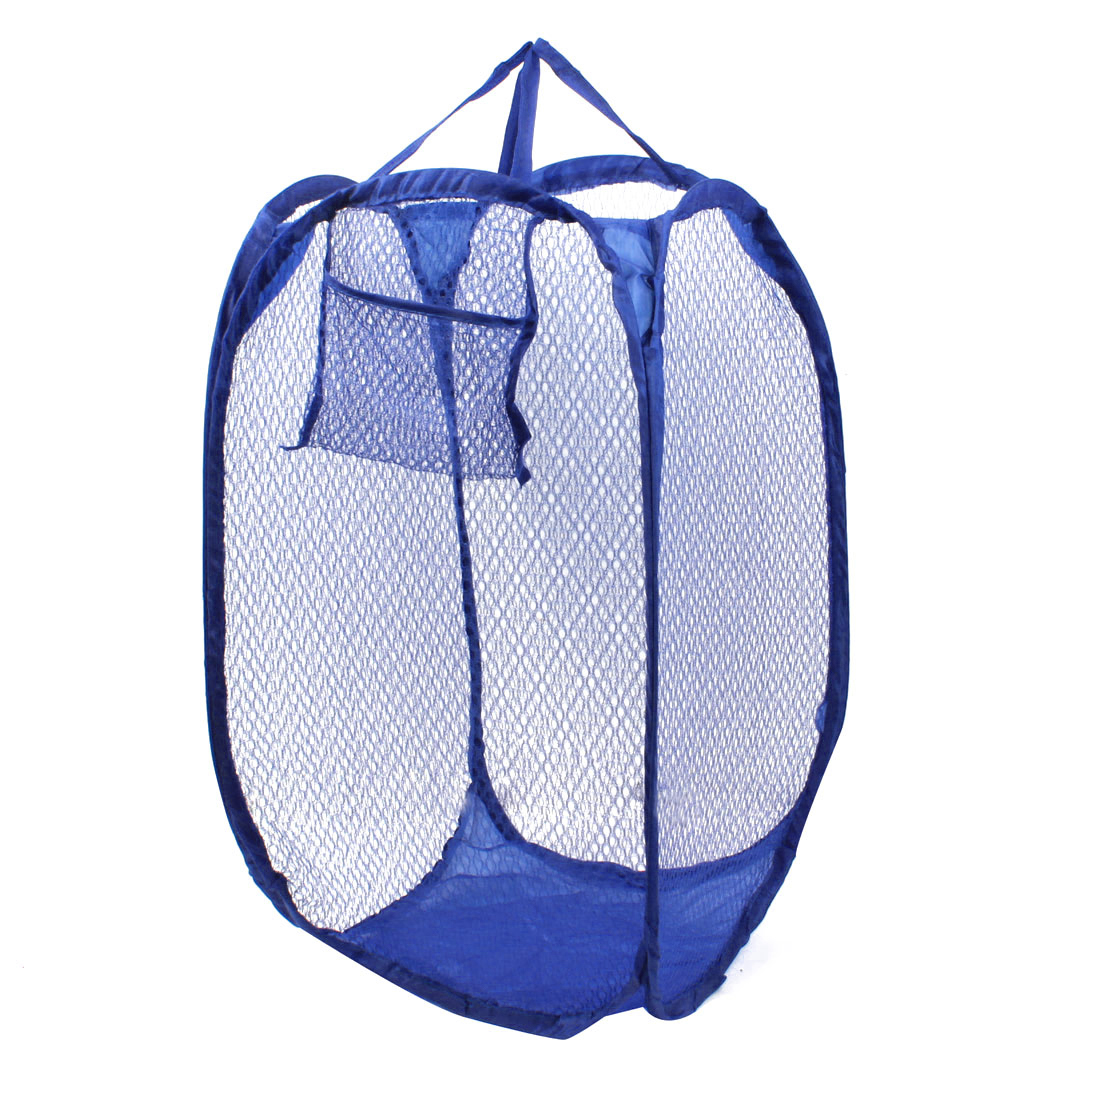 Blue Strap Nylon Netty Foldable Tidy Clothes Storage Laundry Basket